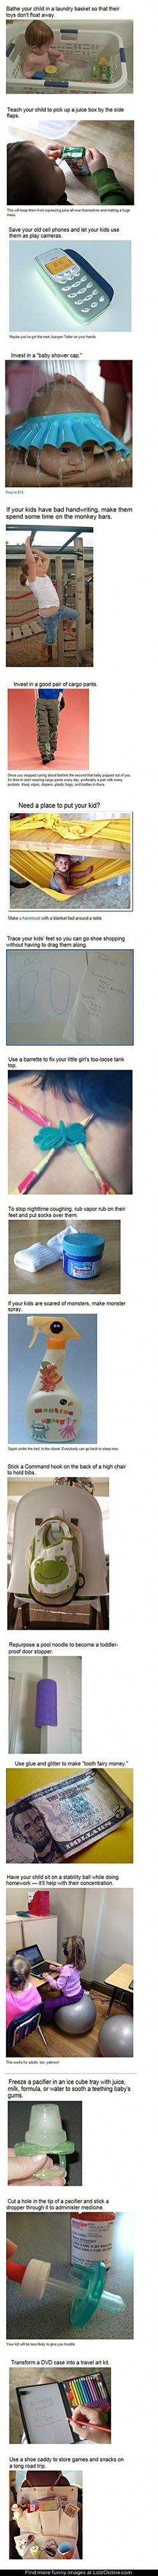 Things I would have wanted to do if i had been able to have kids